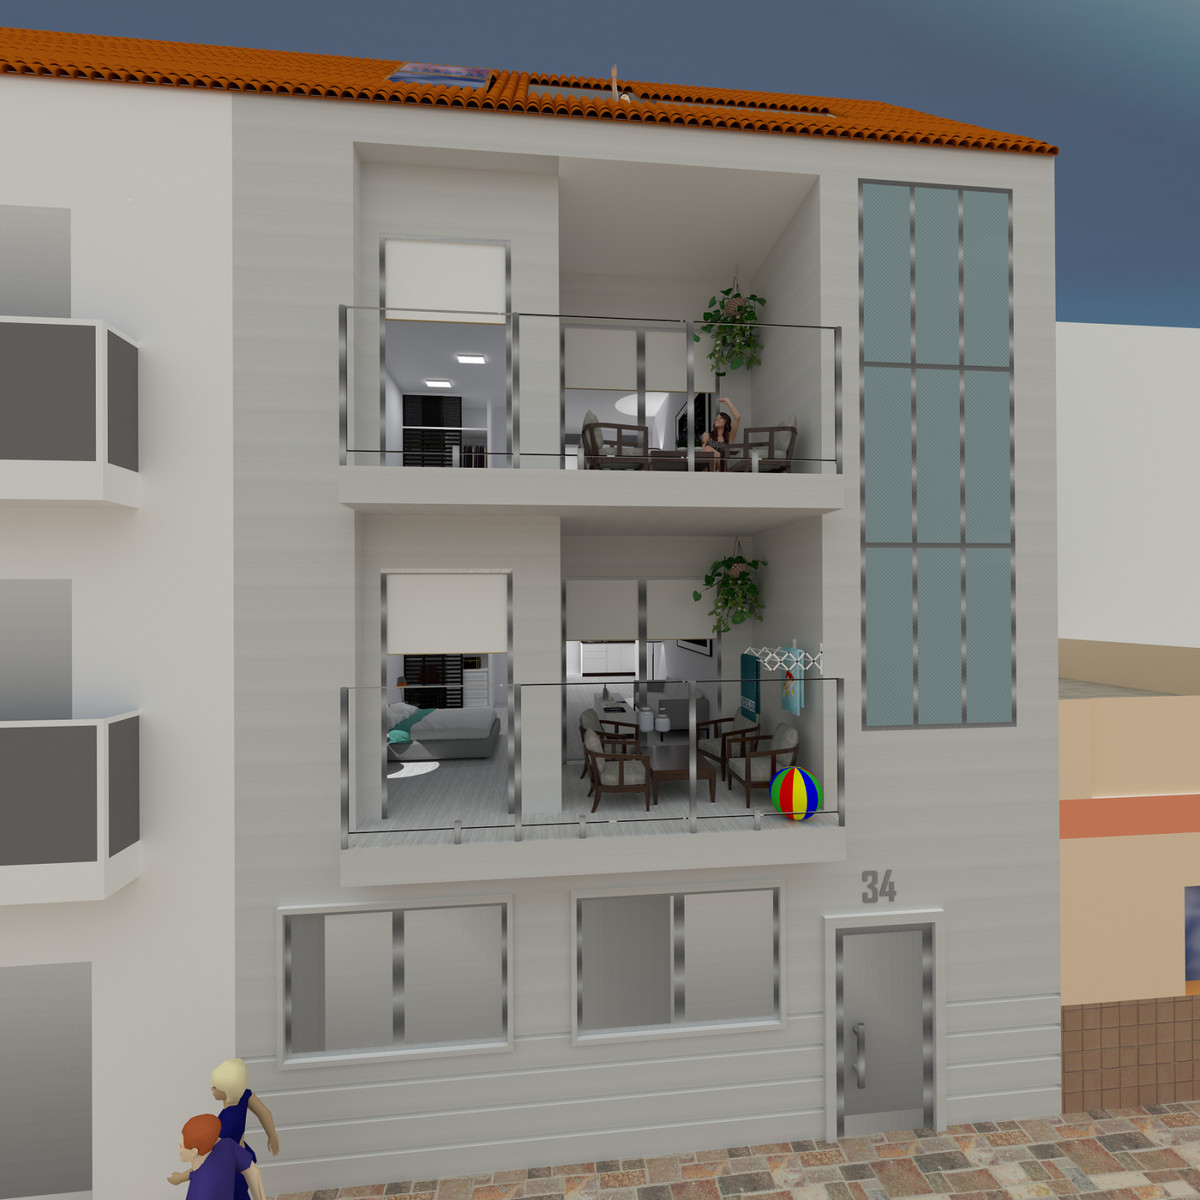 NEW PROMOTION  APARTMENTS with luxury qualities, in Calle Juan Breva 34  Located in the center of Lo,Spain